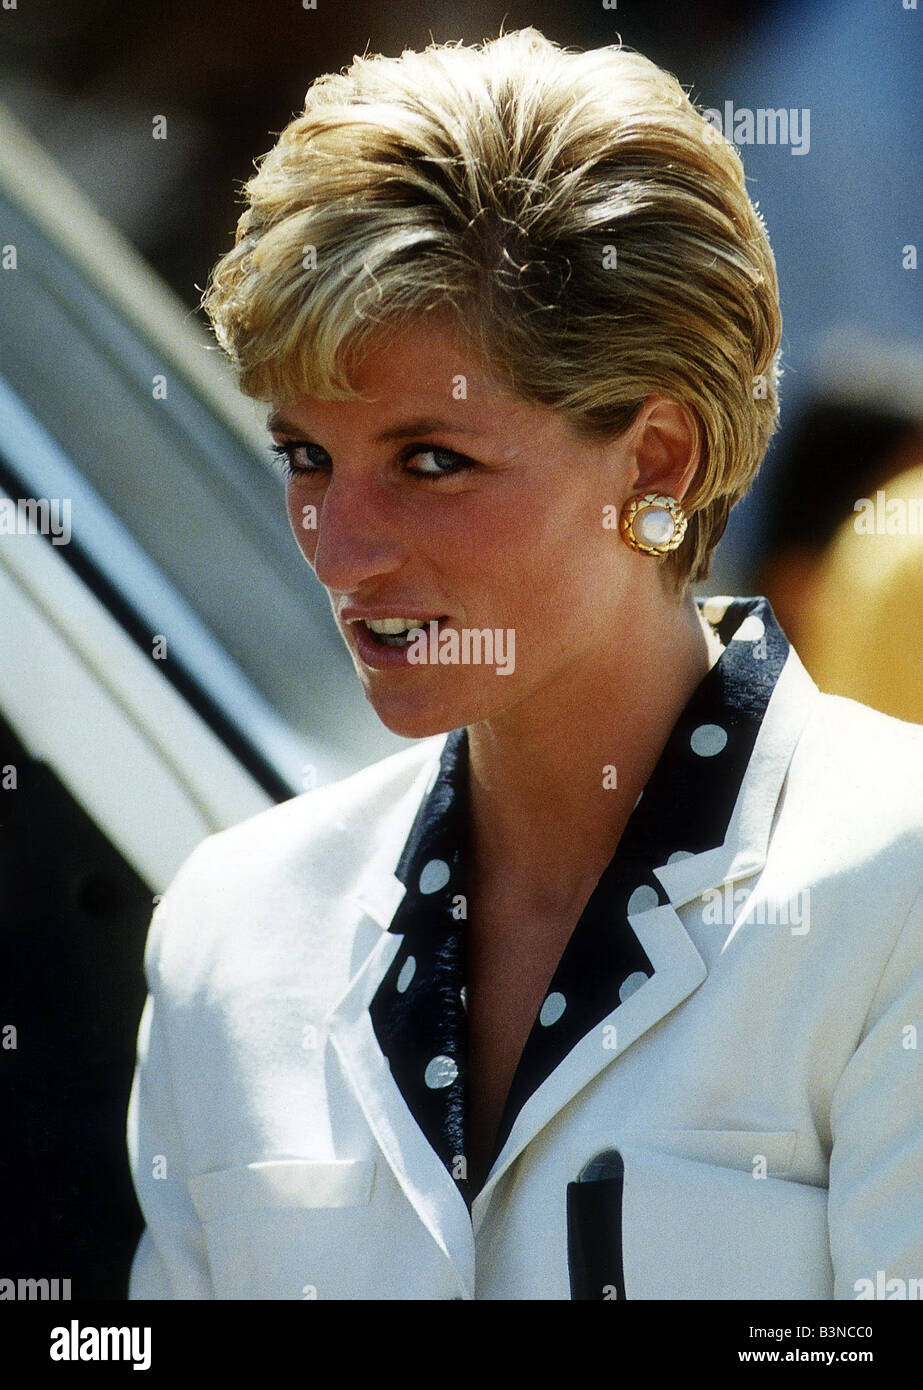 Princess Diana Showing Her New Hairstyle July 1990 Stock Photo